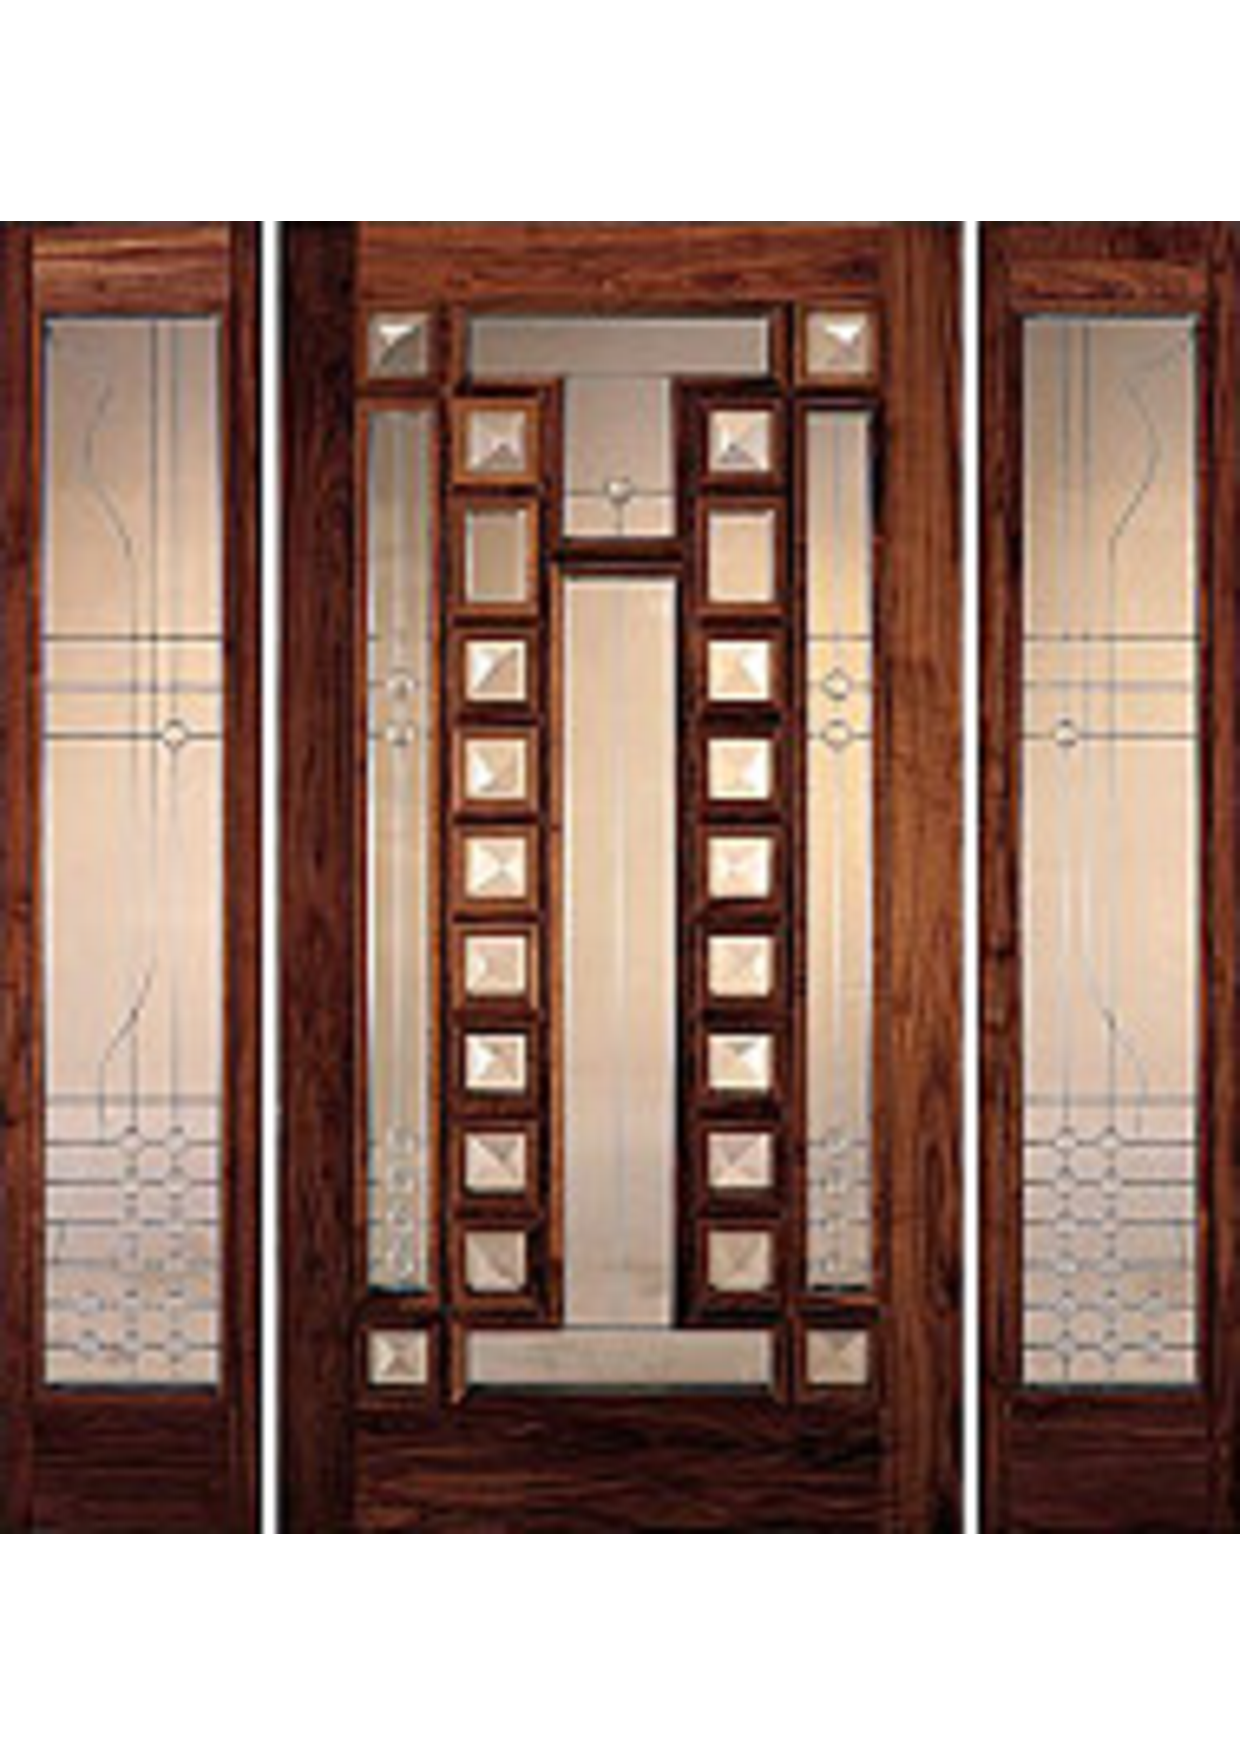 Living room door designs in india nakicphotography for French main door designs